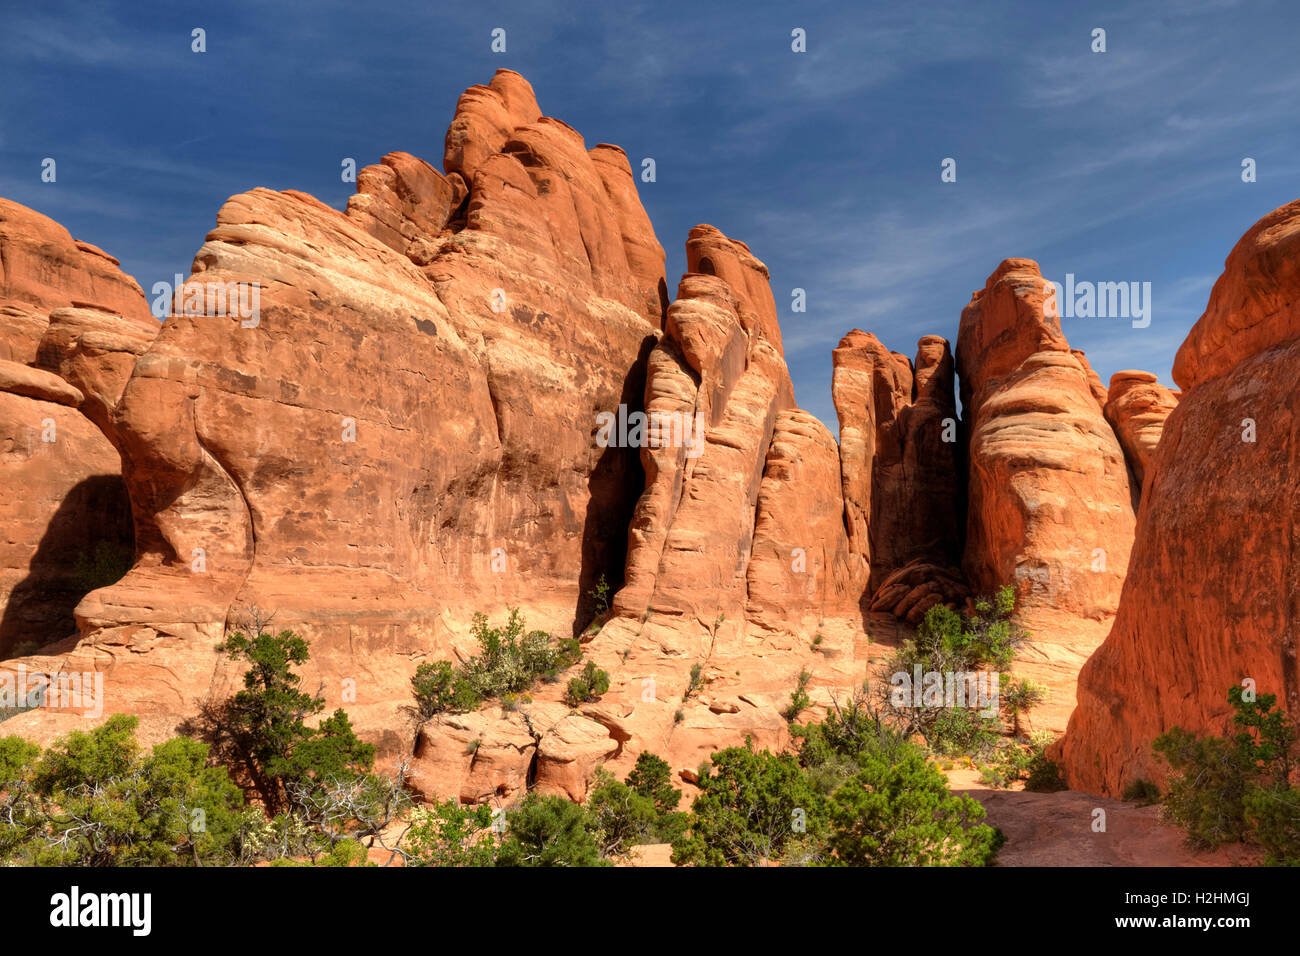 Fins of Entrada sandstone in the vicinity of Tower Arch in Arches National Park, Utah - Stock Image